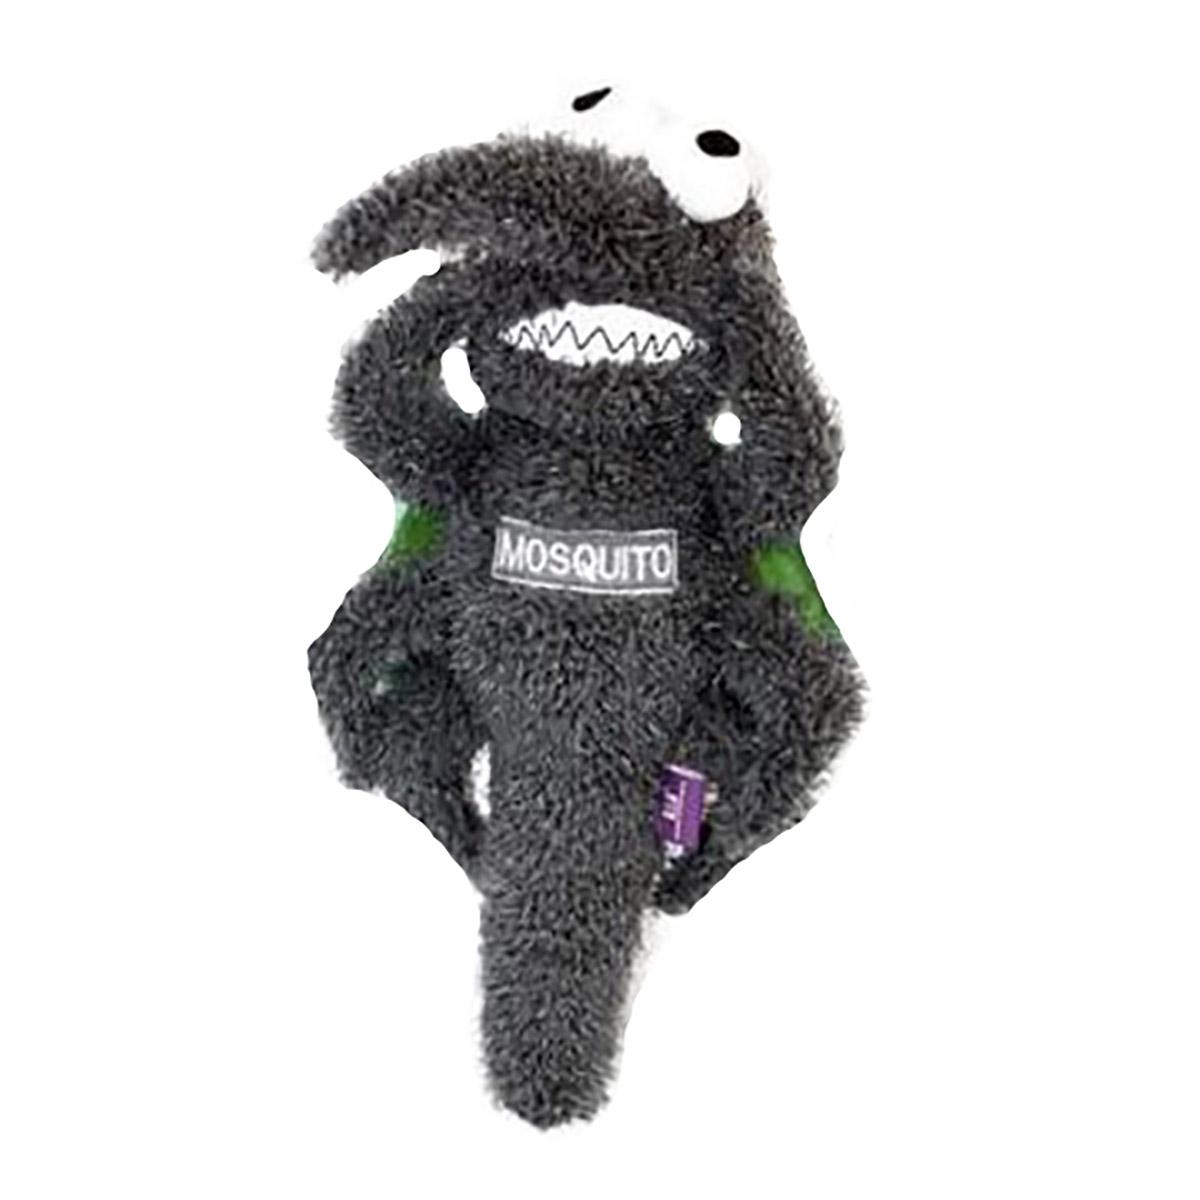 Sucker Mosquito Dog Toy from MultiPet